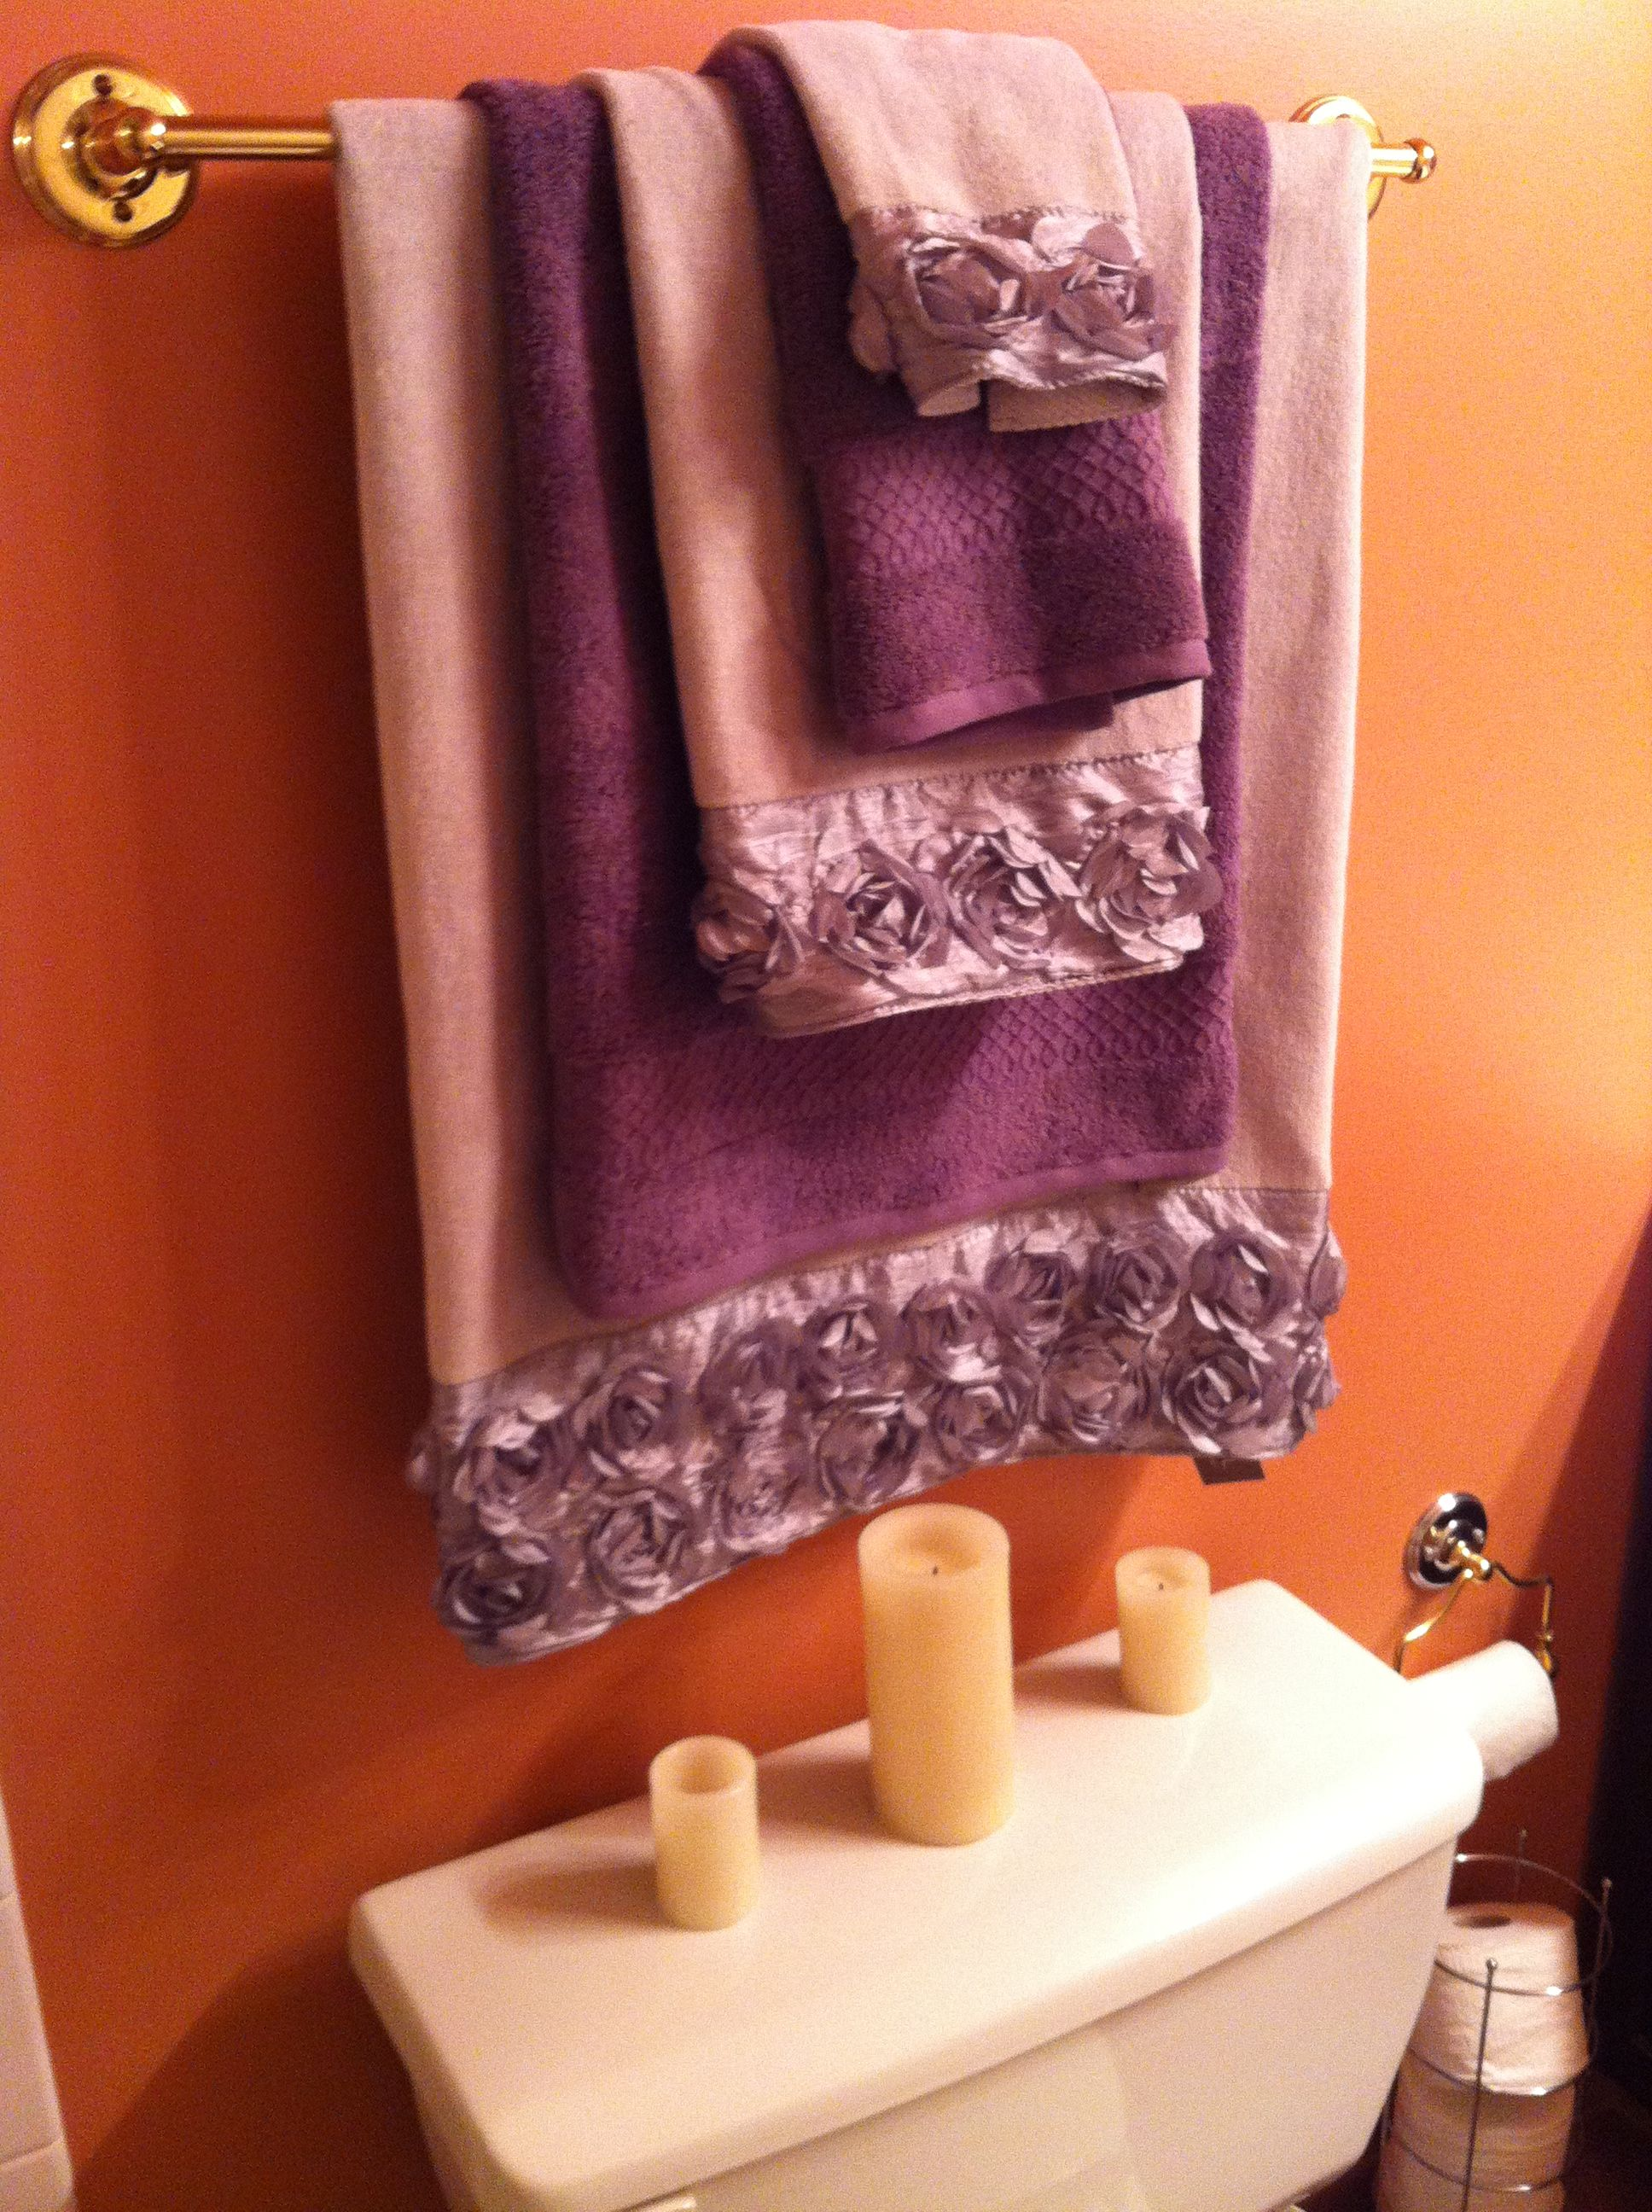 Bathroom Update Nice Grey Towels With Decorative Roses And Deep Purple Accents Si Bathroom Towel Decor Decorative Bath Towels Purple Bathroom Decor